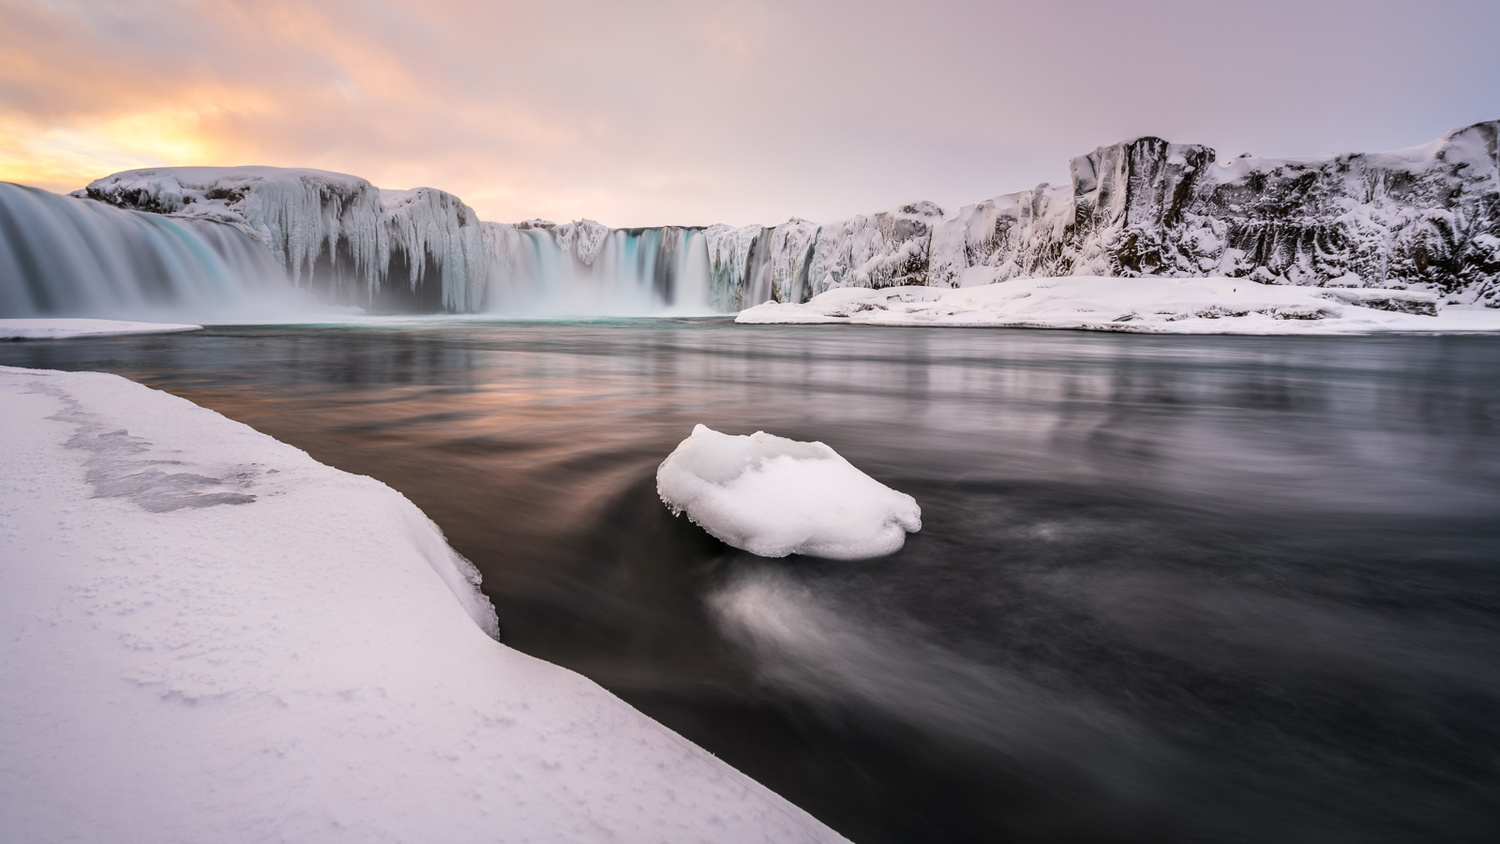 Goðafoss waterfall in wintertime by Einar Gudmann